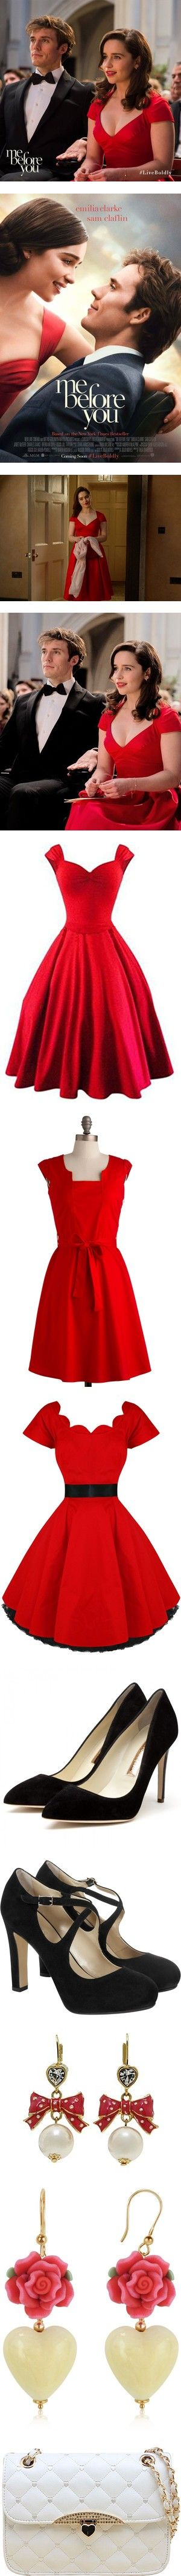 Me Before You - Louisa's Wardrobe by crystalbird on Polyvore featuring women's fashion, dresses, red rockabilly dress, going out dresses, cocktail party dress, retro party dress, vintage style dresses, red, modcloth and red dress